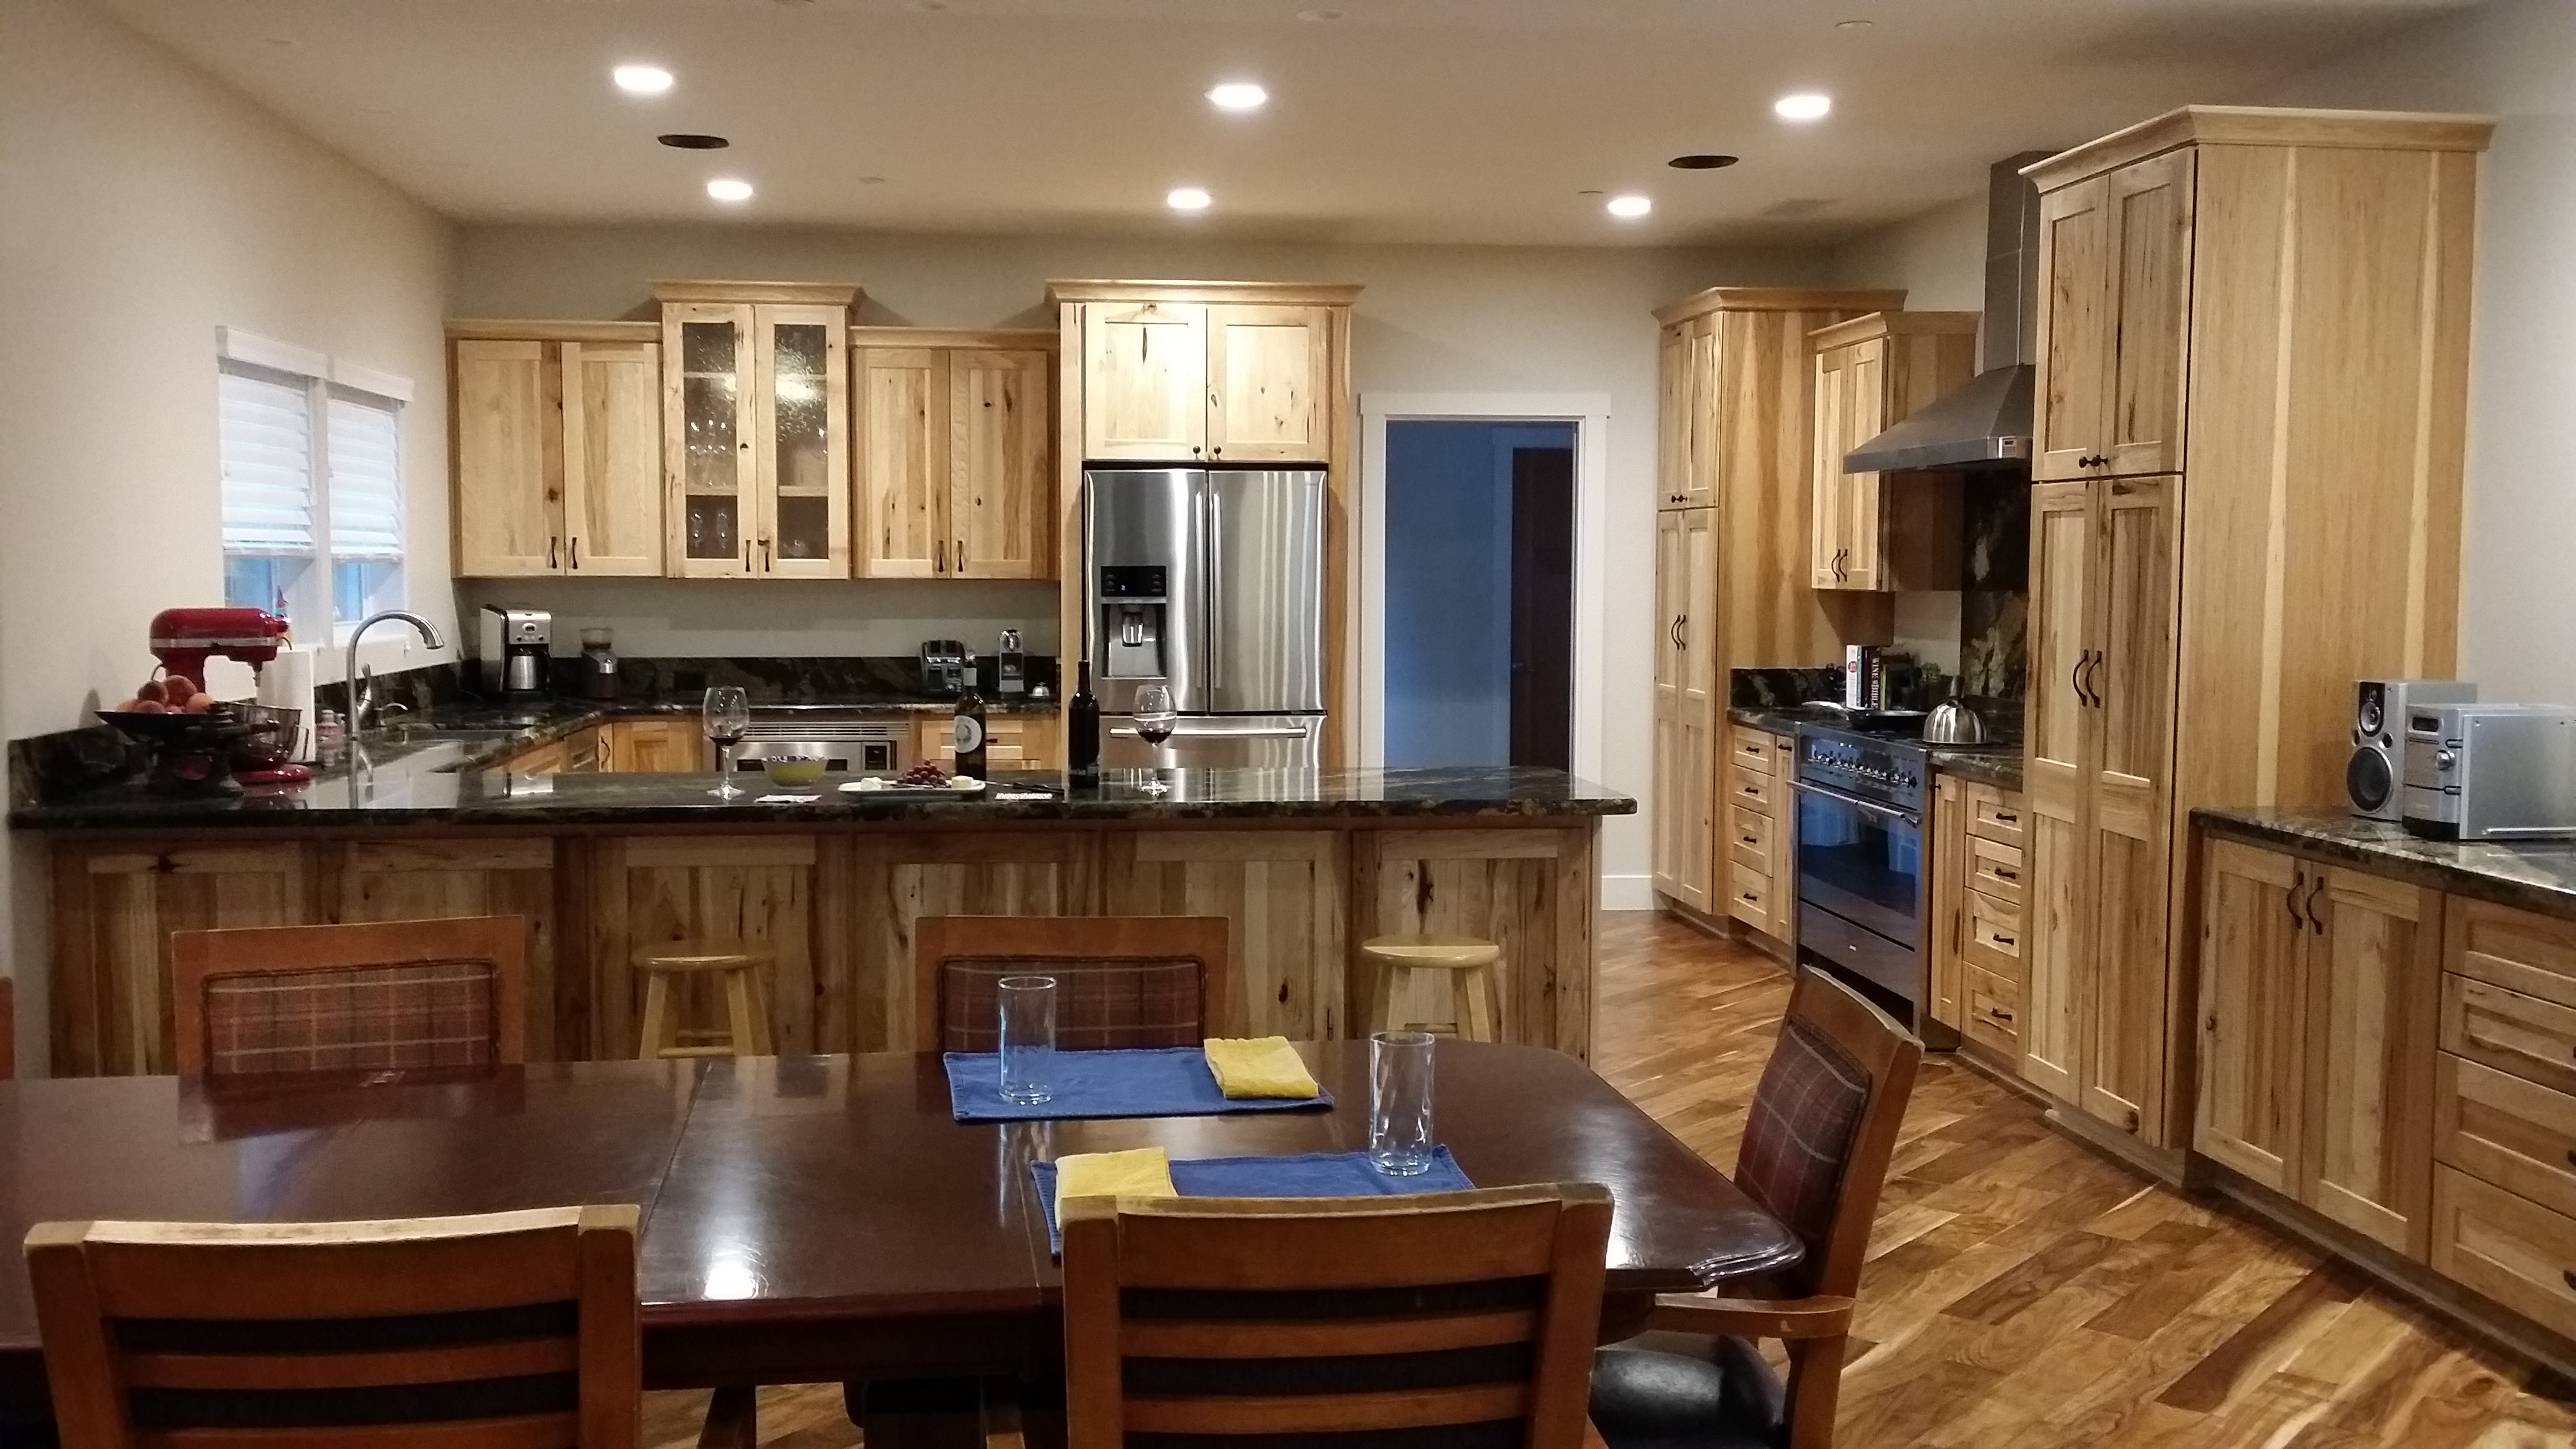 Craftsman kitchen, distressed wood cabinets and black countertops